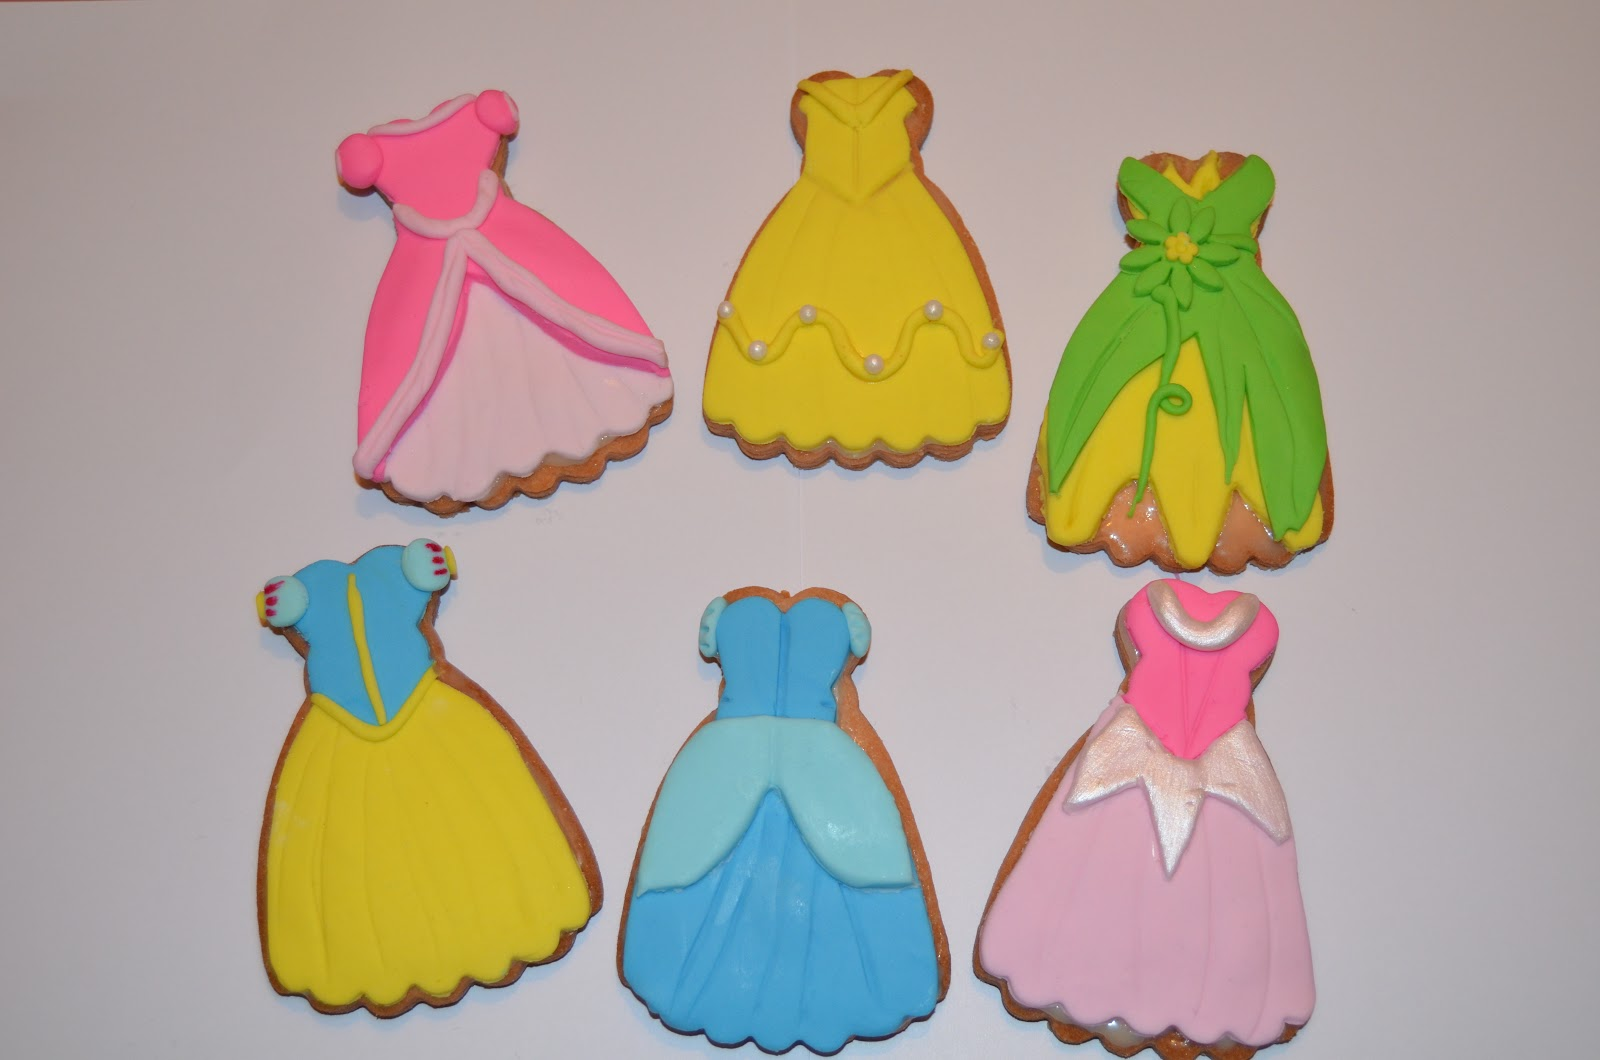 Galletas Decoradas De Princesas Elena Galletas Vestidos De Princesas